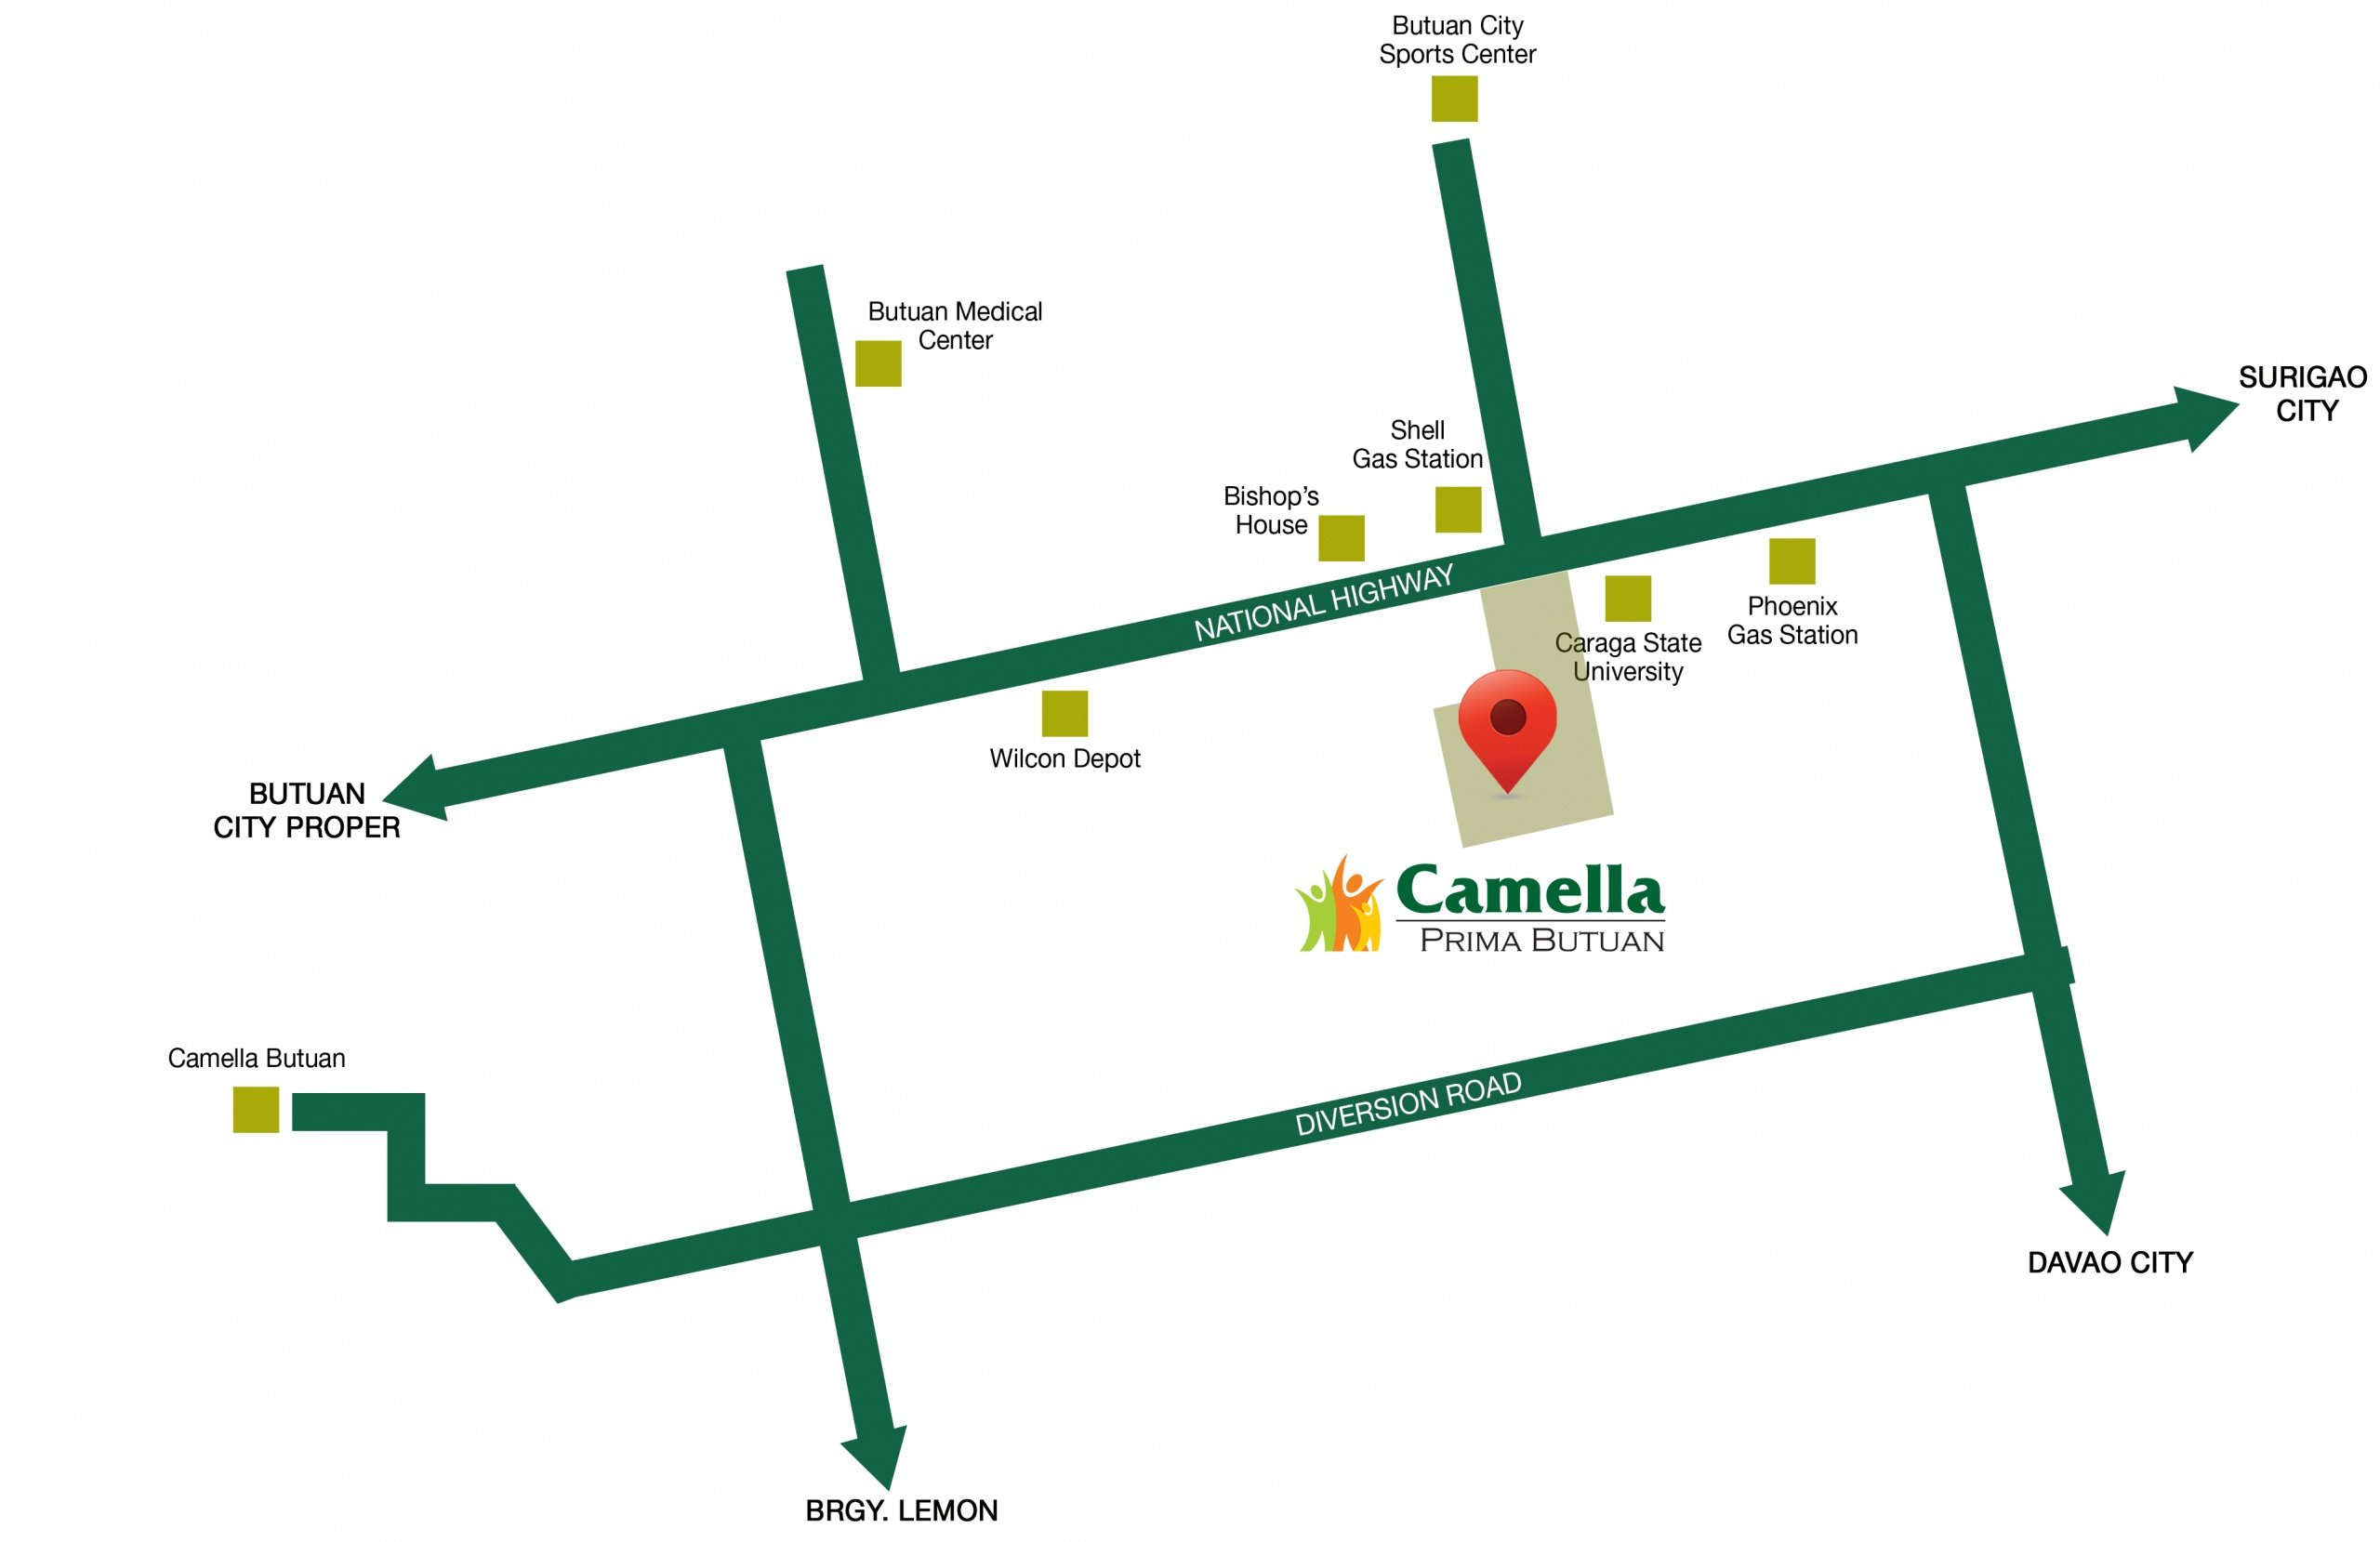 Camella Prima Butuan vicinity map